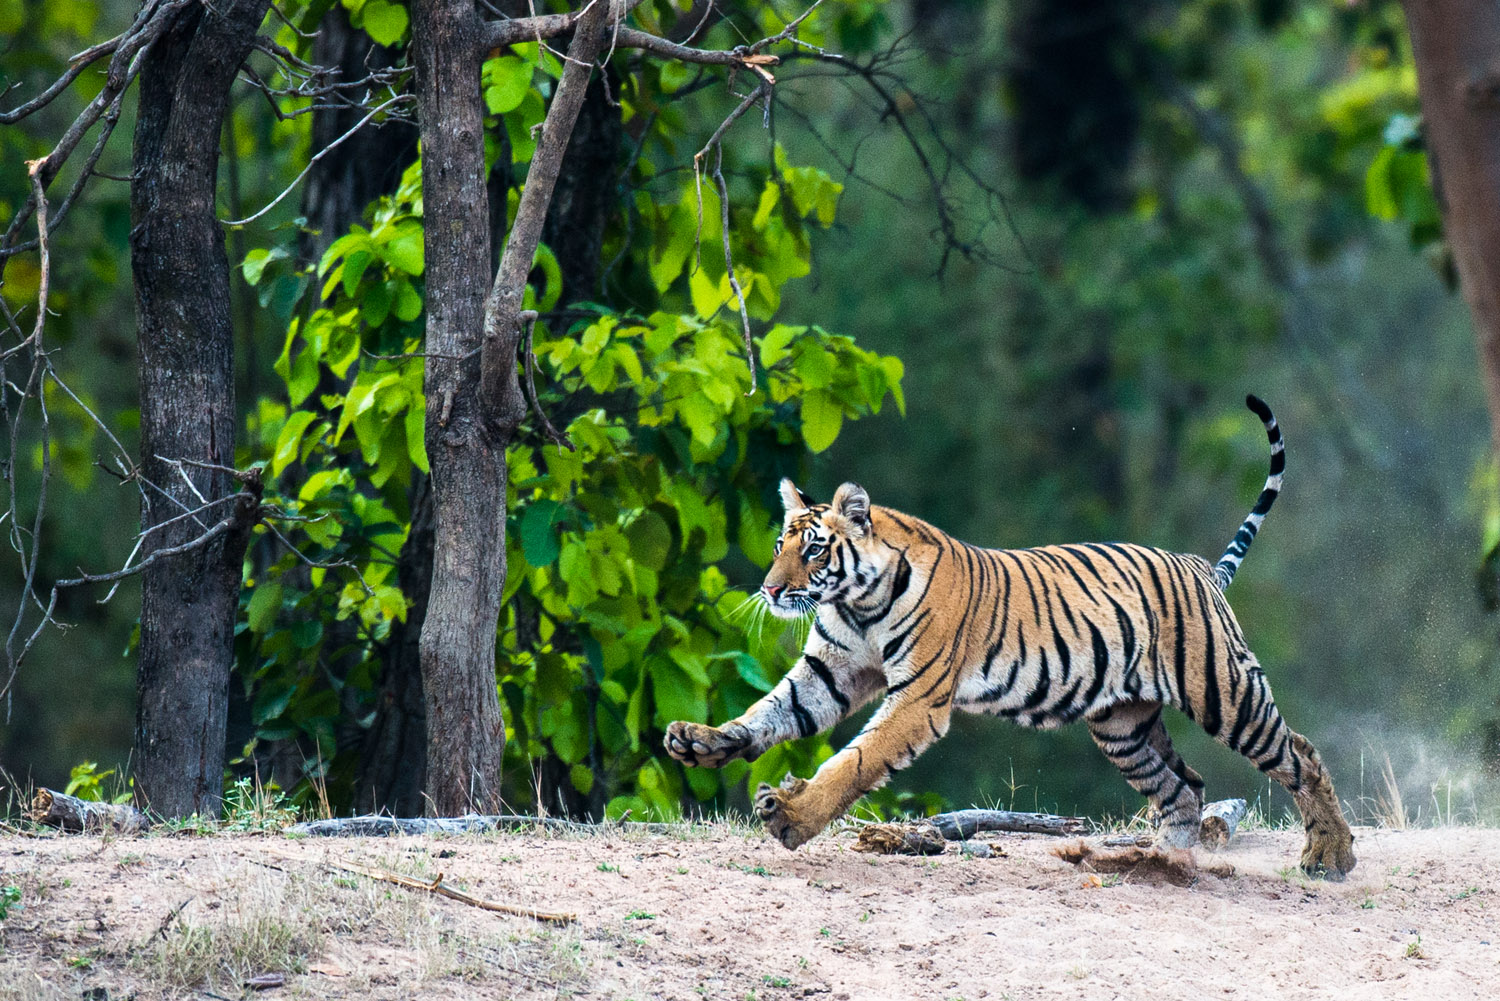 Bengal tiger cub running at edge of sal forest, Bandhavgarh National Park, Madhya Pradesh, India